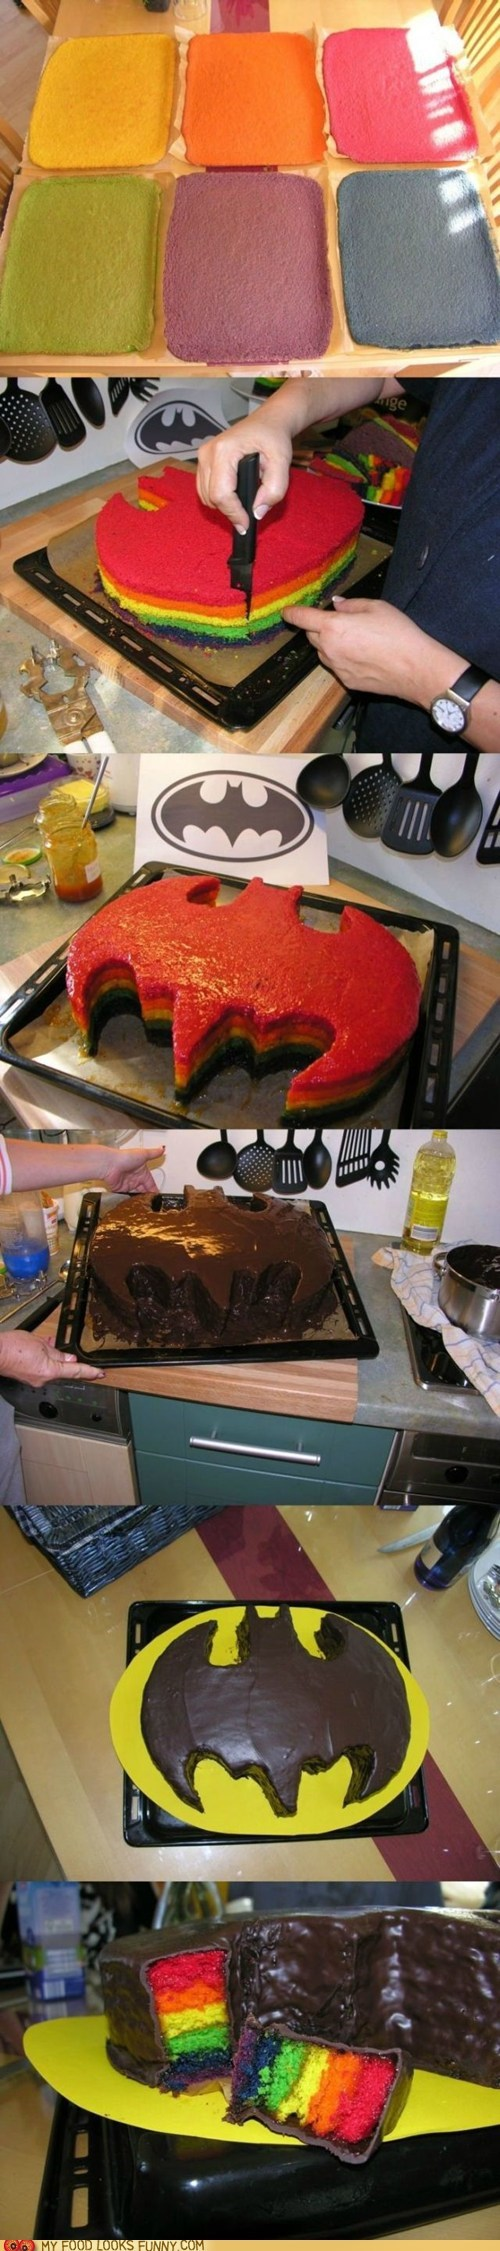 batman best of the week cake chocolate rainbow - 6491863040